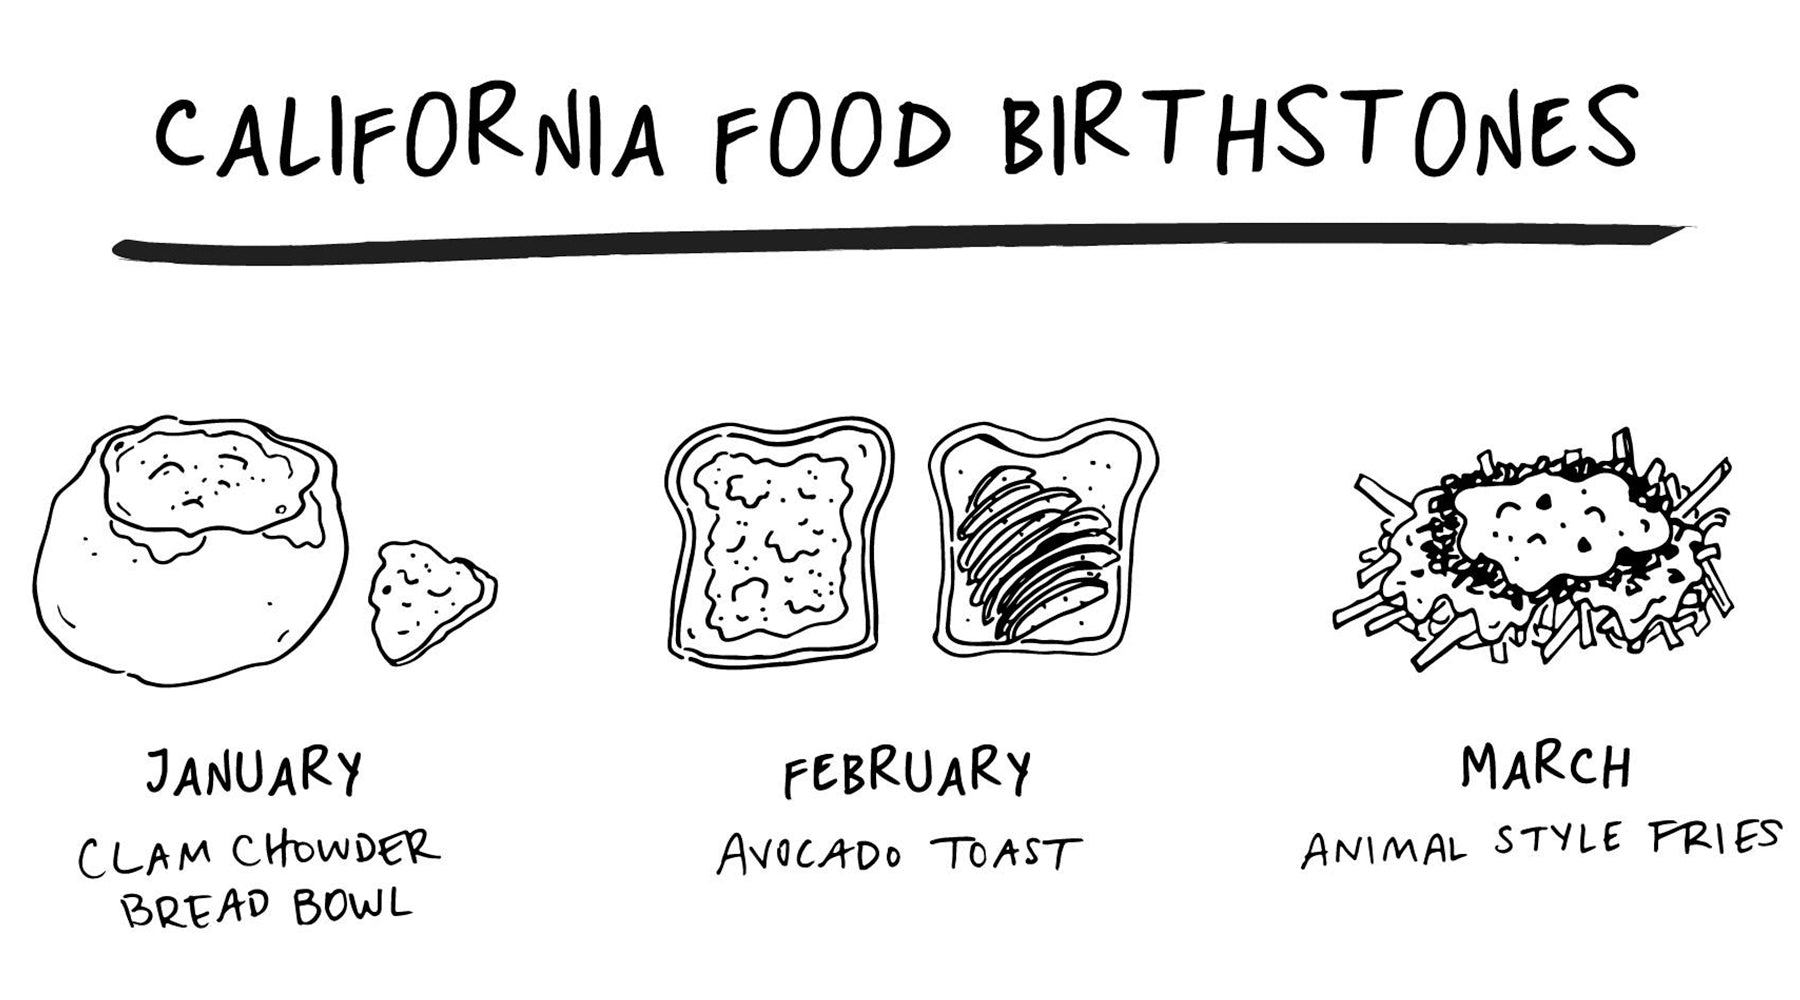 What's Your California Food Birthstone?